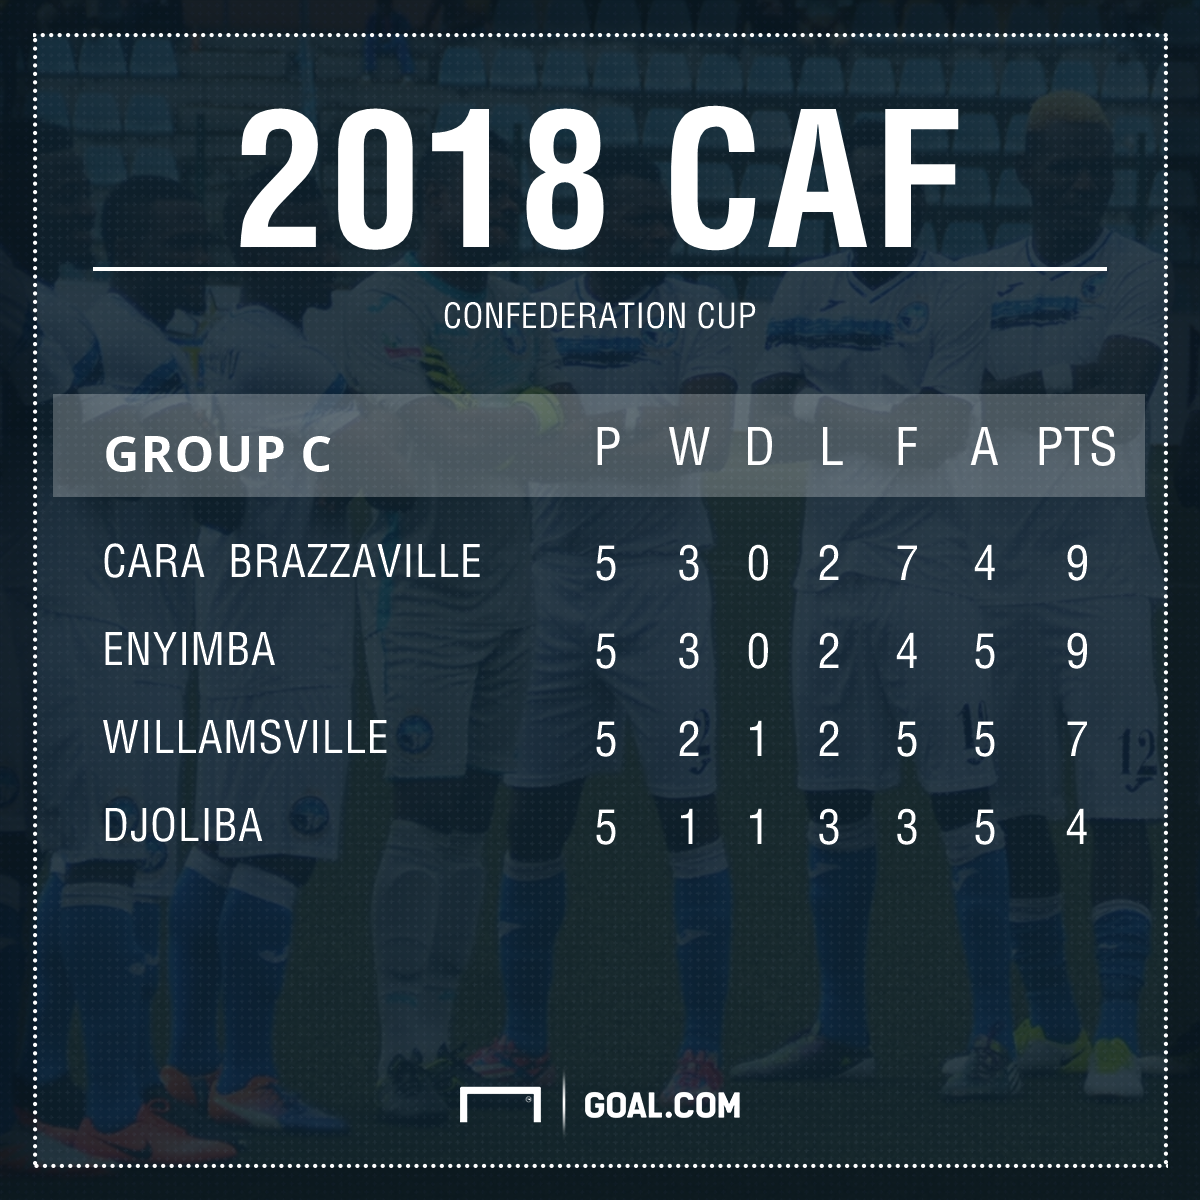 Enyimba Caf CC Table PS